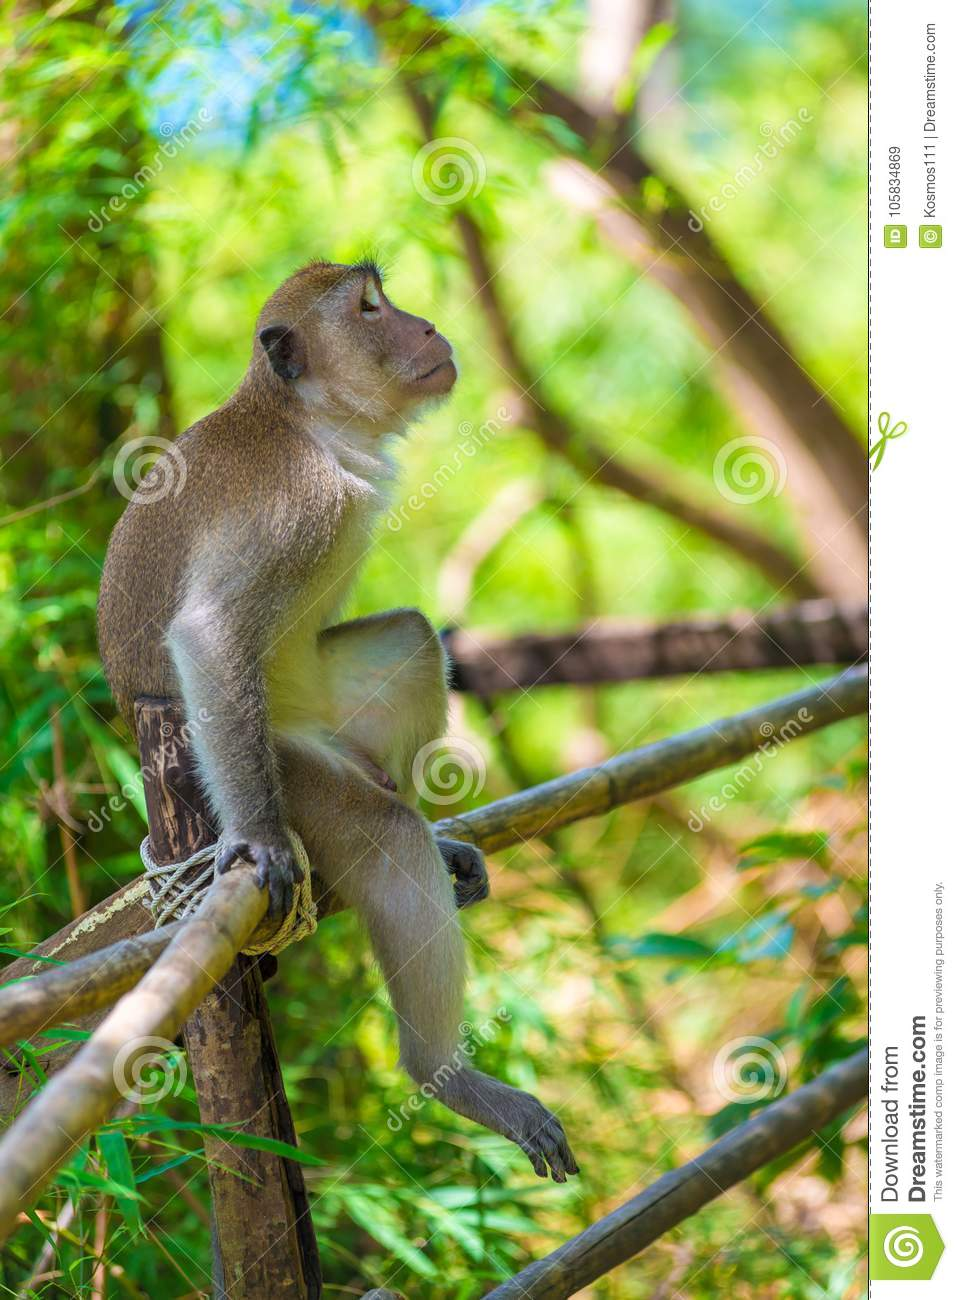 a pensive lonely monkey sits on a fence in the shade